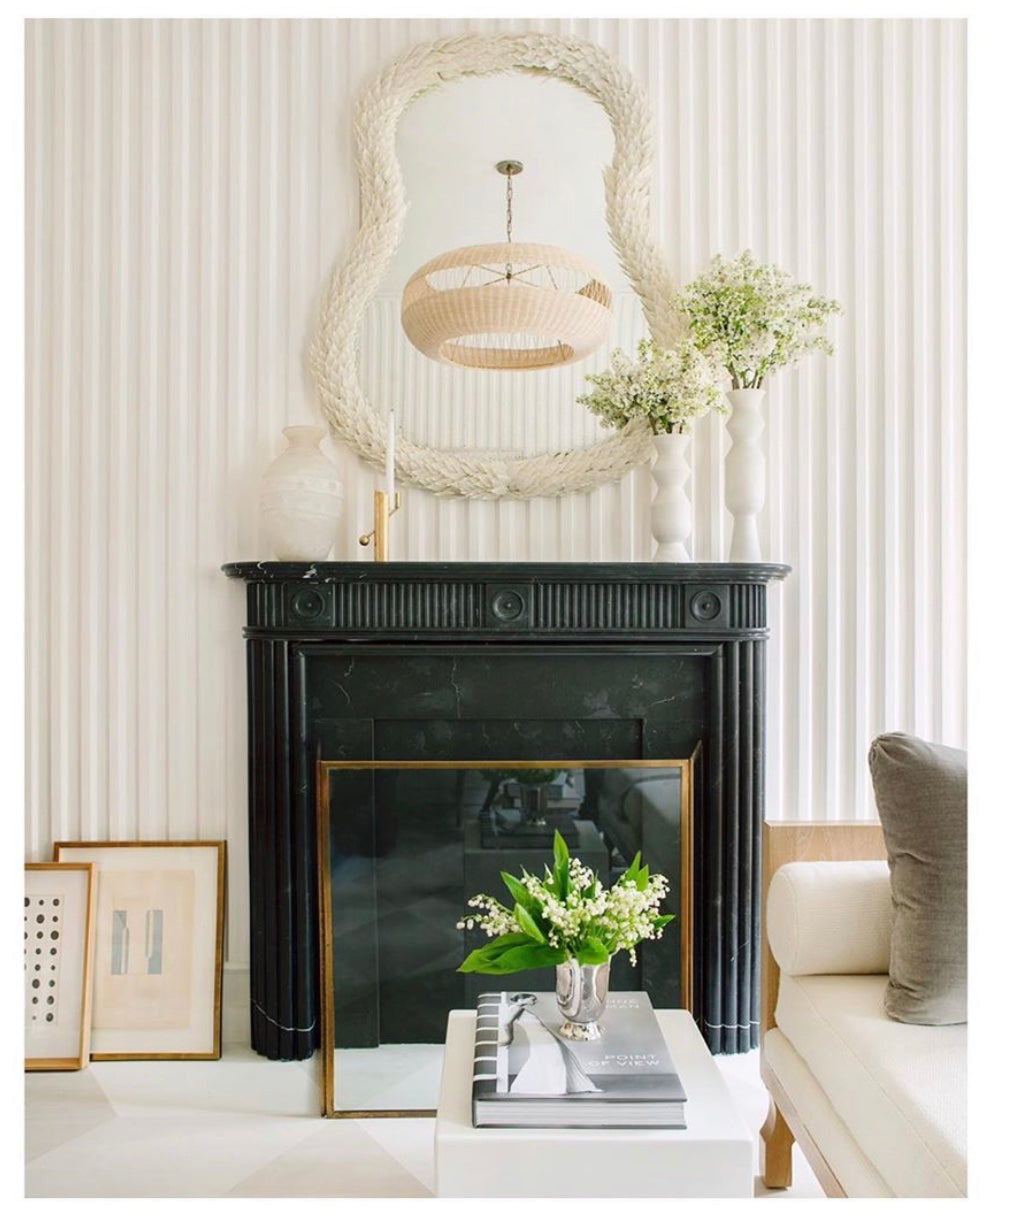 More unexpected contrasts: The classic black marble mantel reflecting a contemporary rattan fixture in the very cool plaster mirror, from Cox London. Patrick Cline Photography